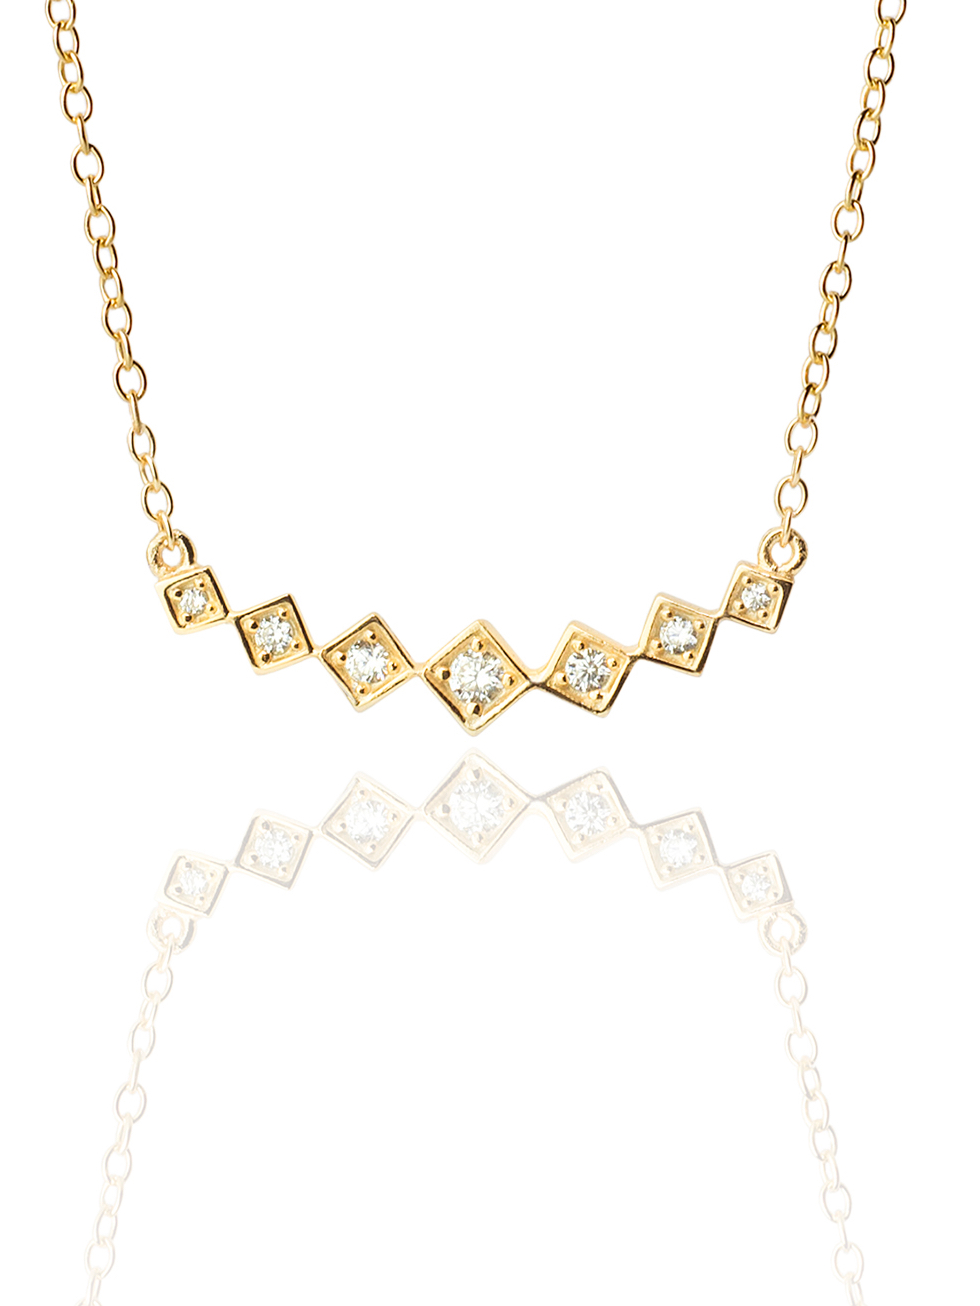 Collar rhomboid gold2